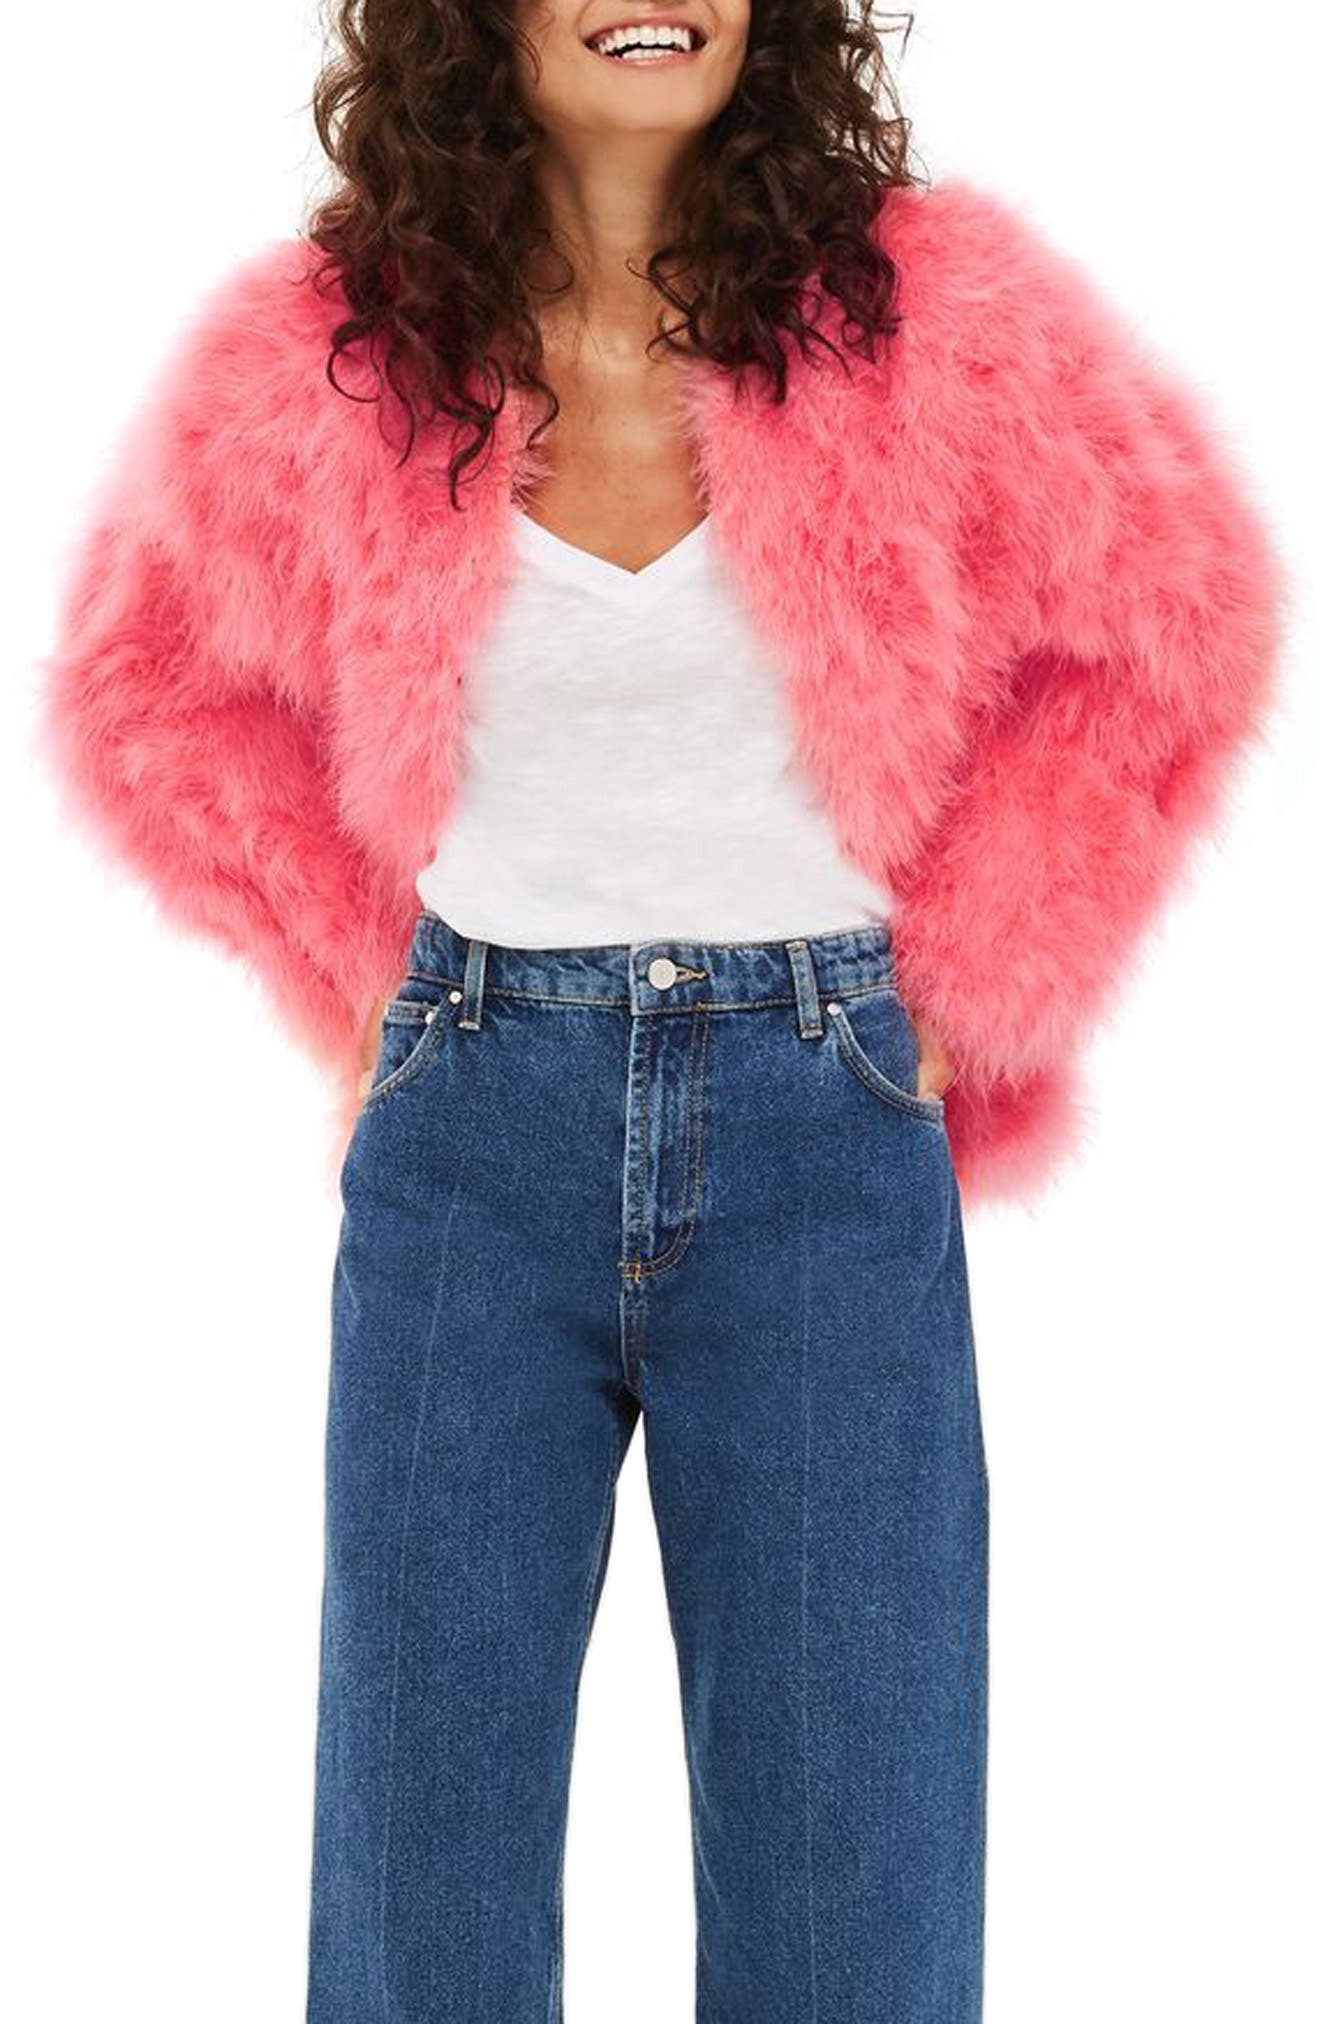 Marabou Feather Jacket,                             Main thumbnail 1, color,                             650